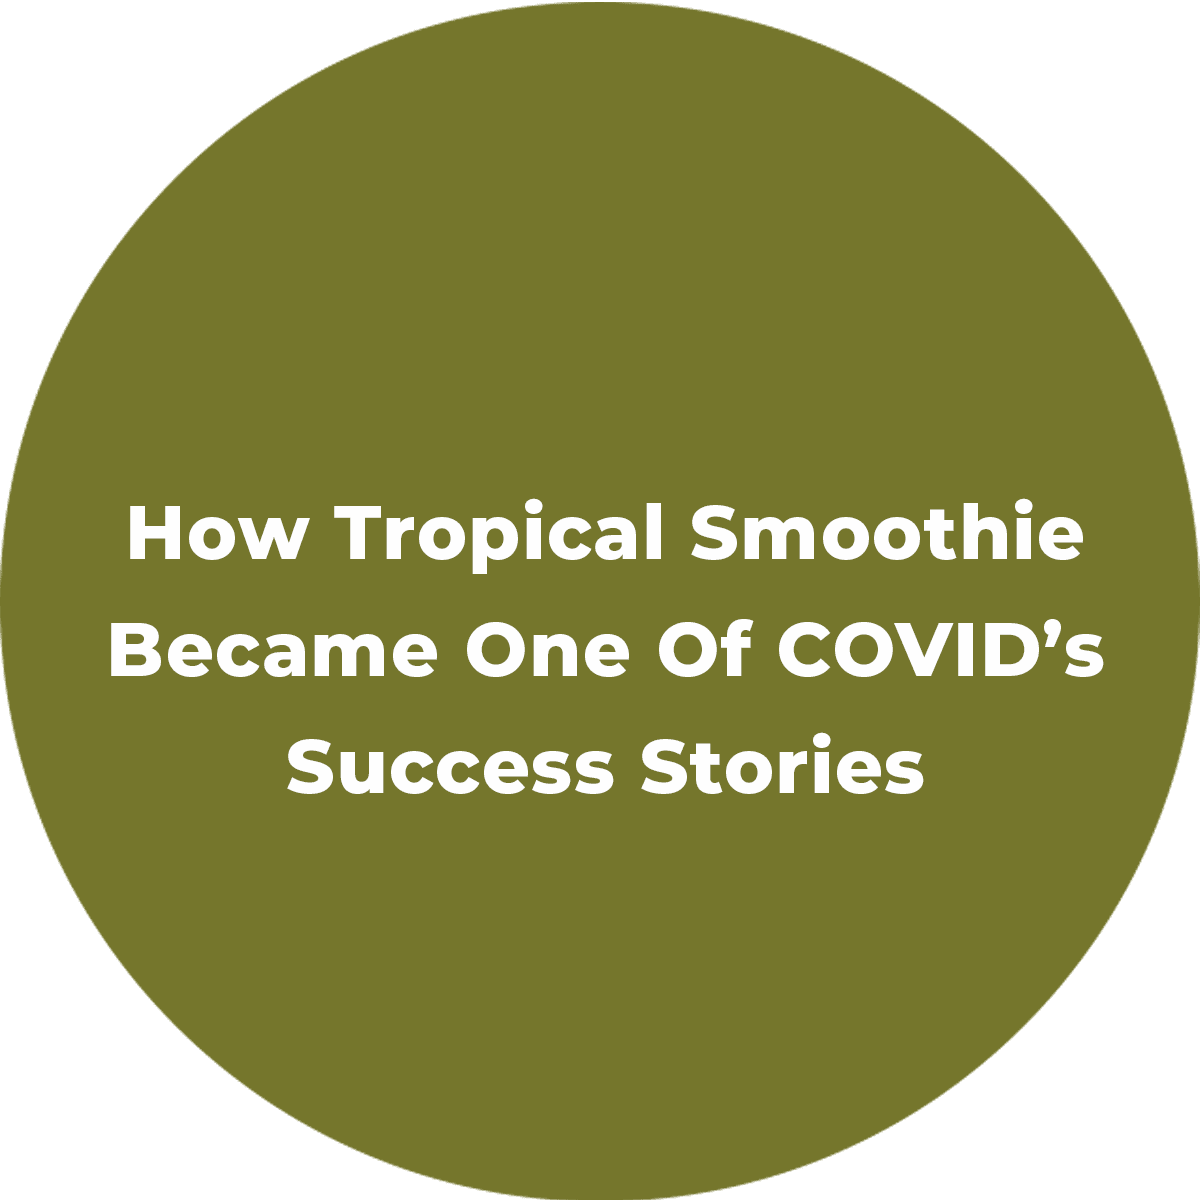 How Tropical Smoothie Cafe Became One of COVID's Success Stories